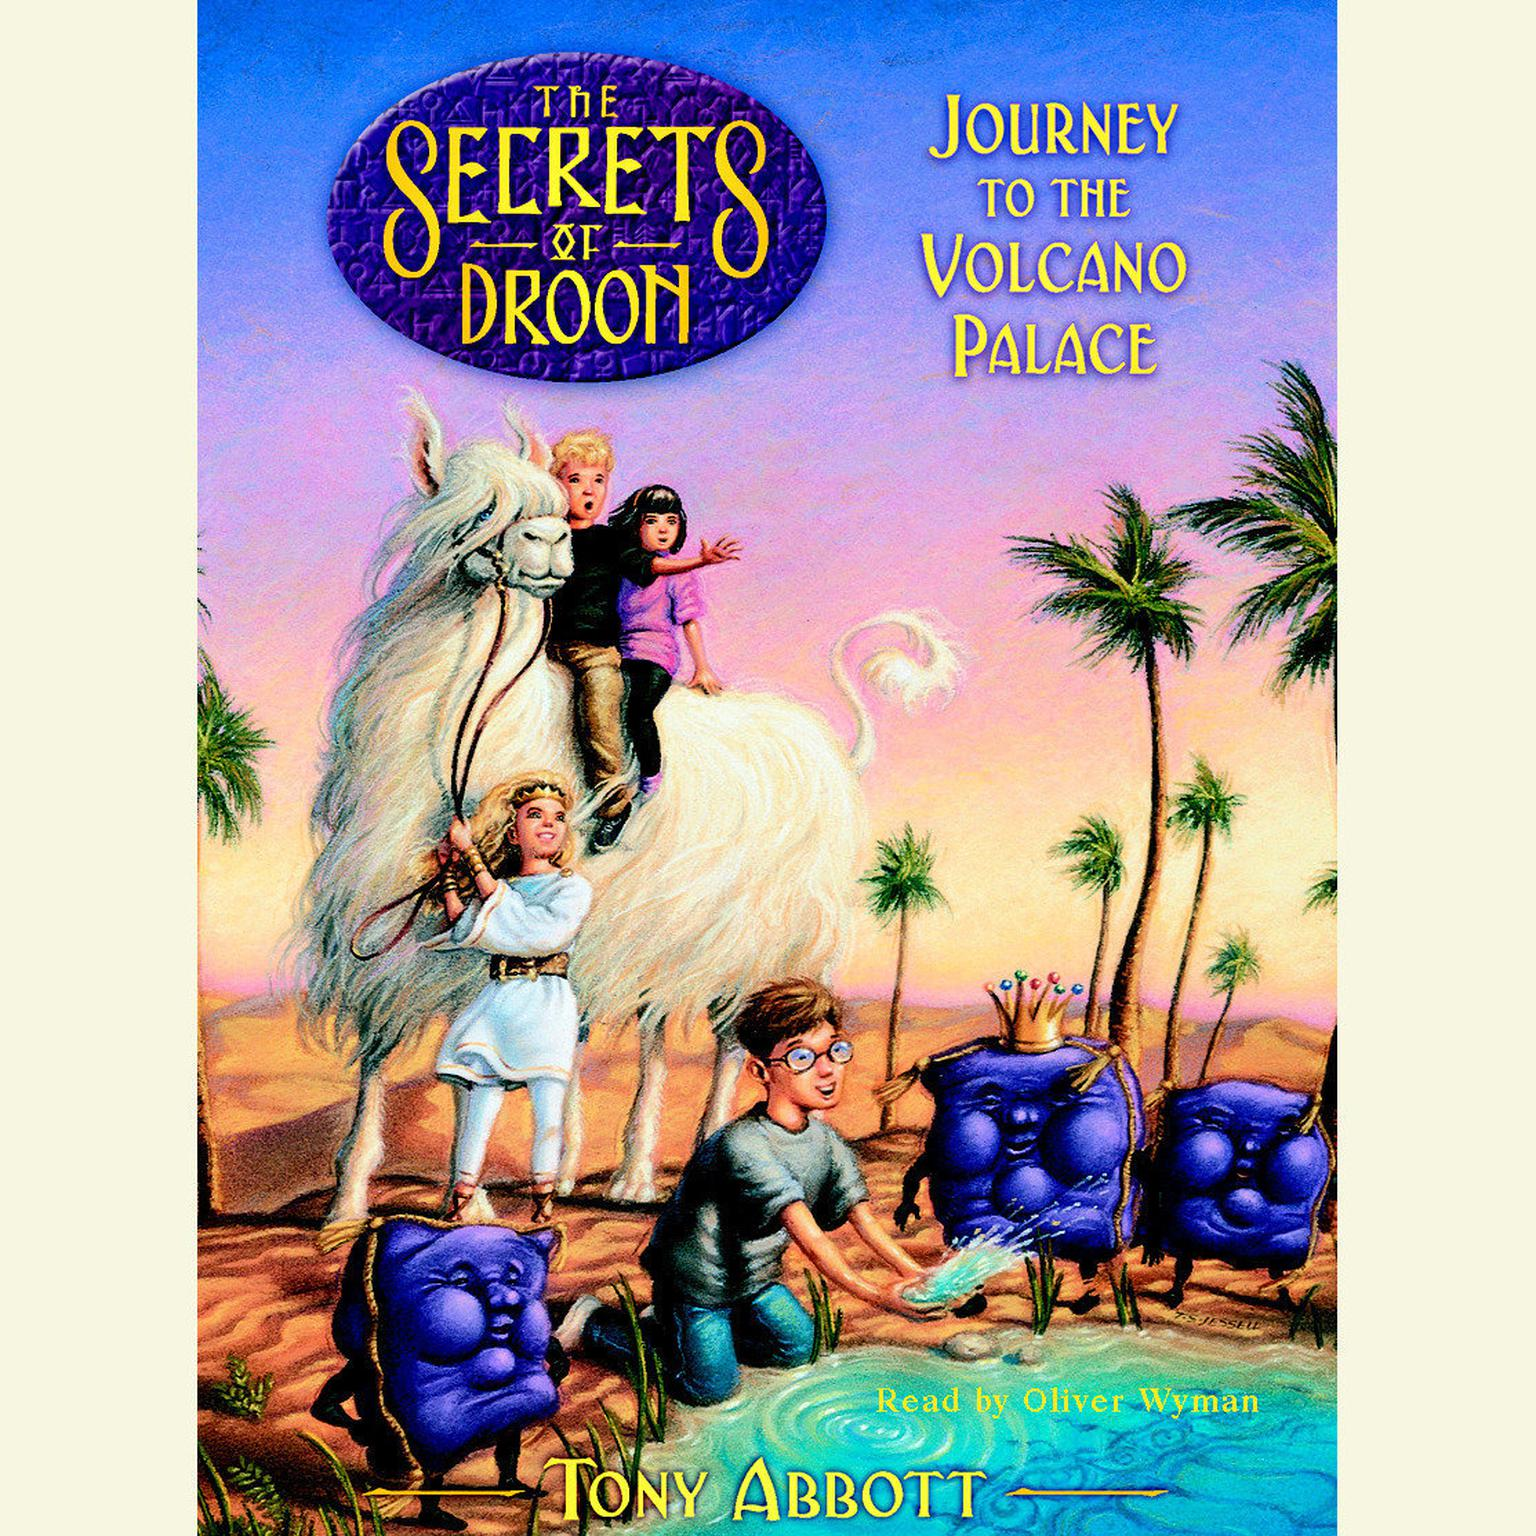 Printable Journey to the Volcano Palace: The Secrets of Droon Book 2 Audiobook Cover Art